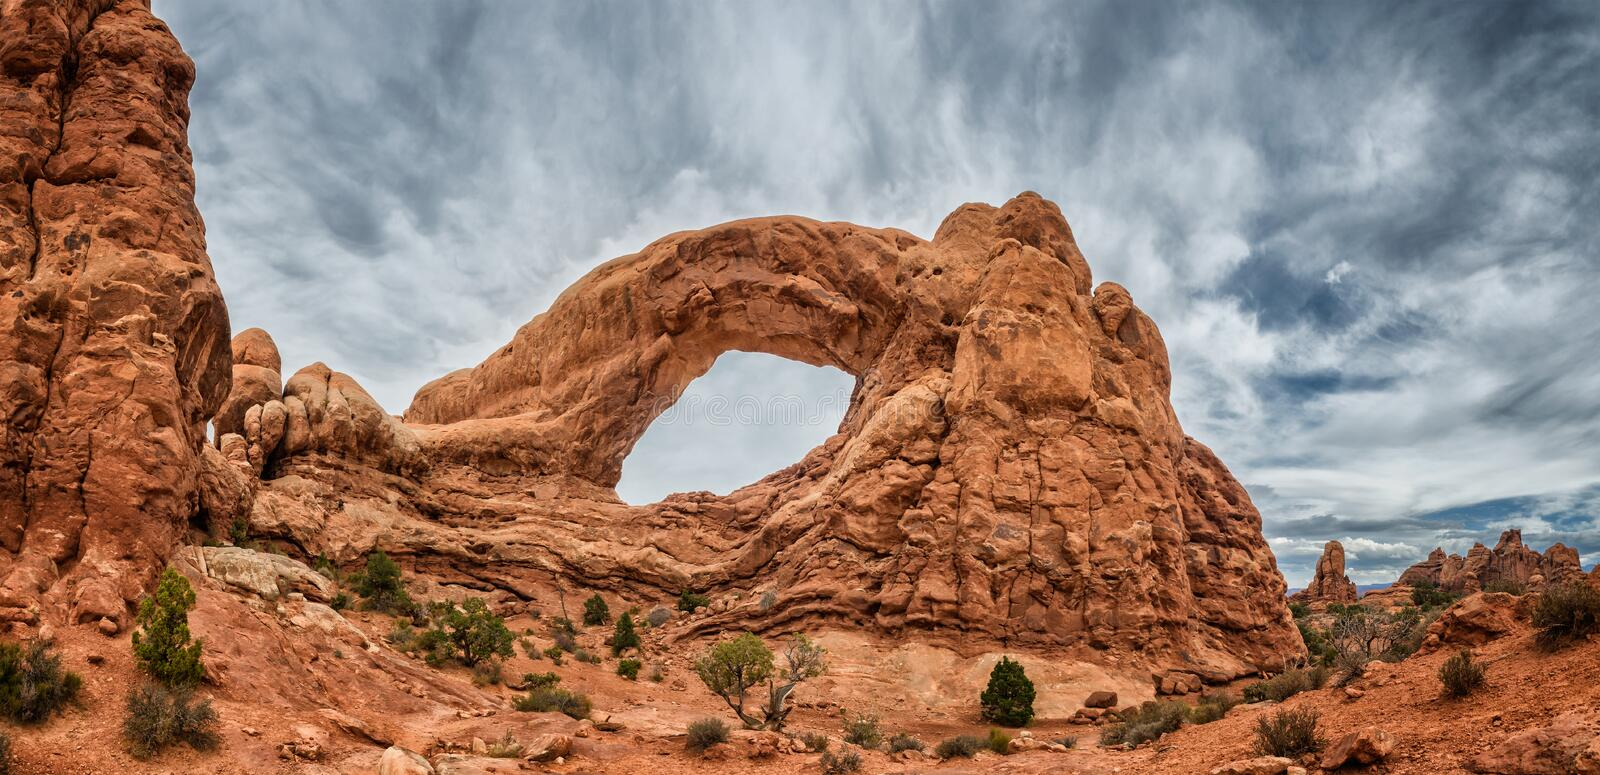 North Window Arch in Arches National Monument, Utah. USA royalty free stock photos